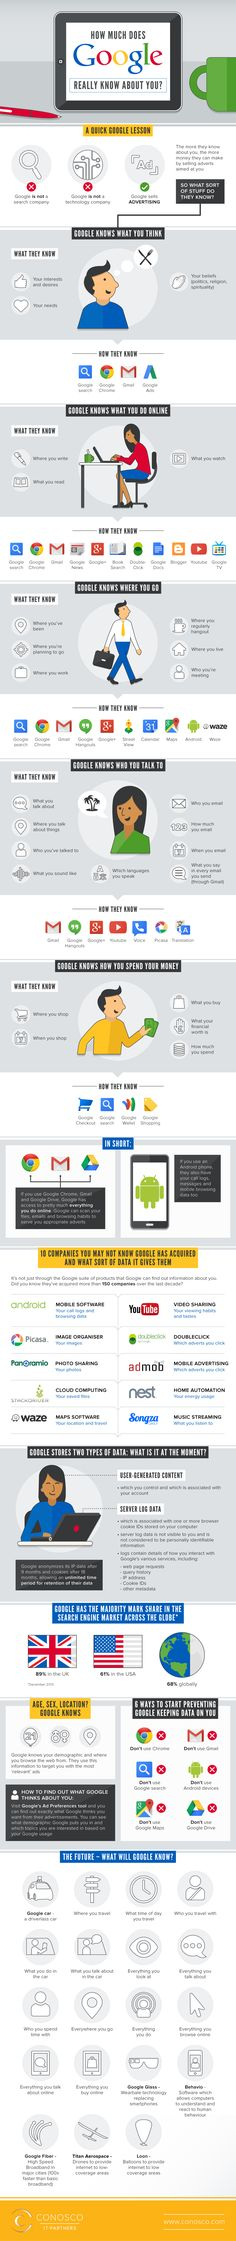 How Much Does Google Really Know About You? #infographic #Google #Data